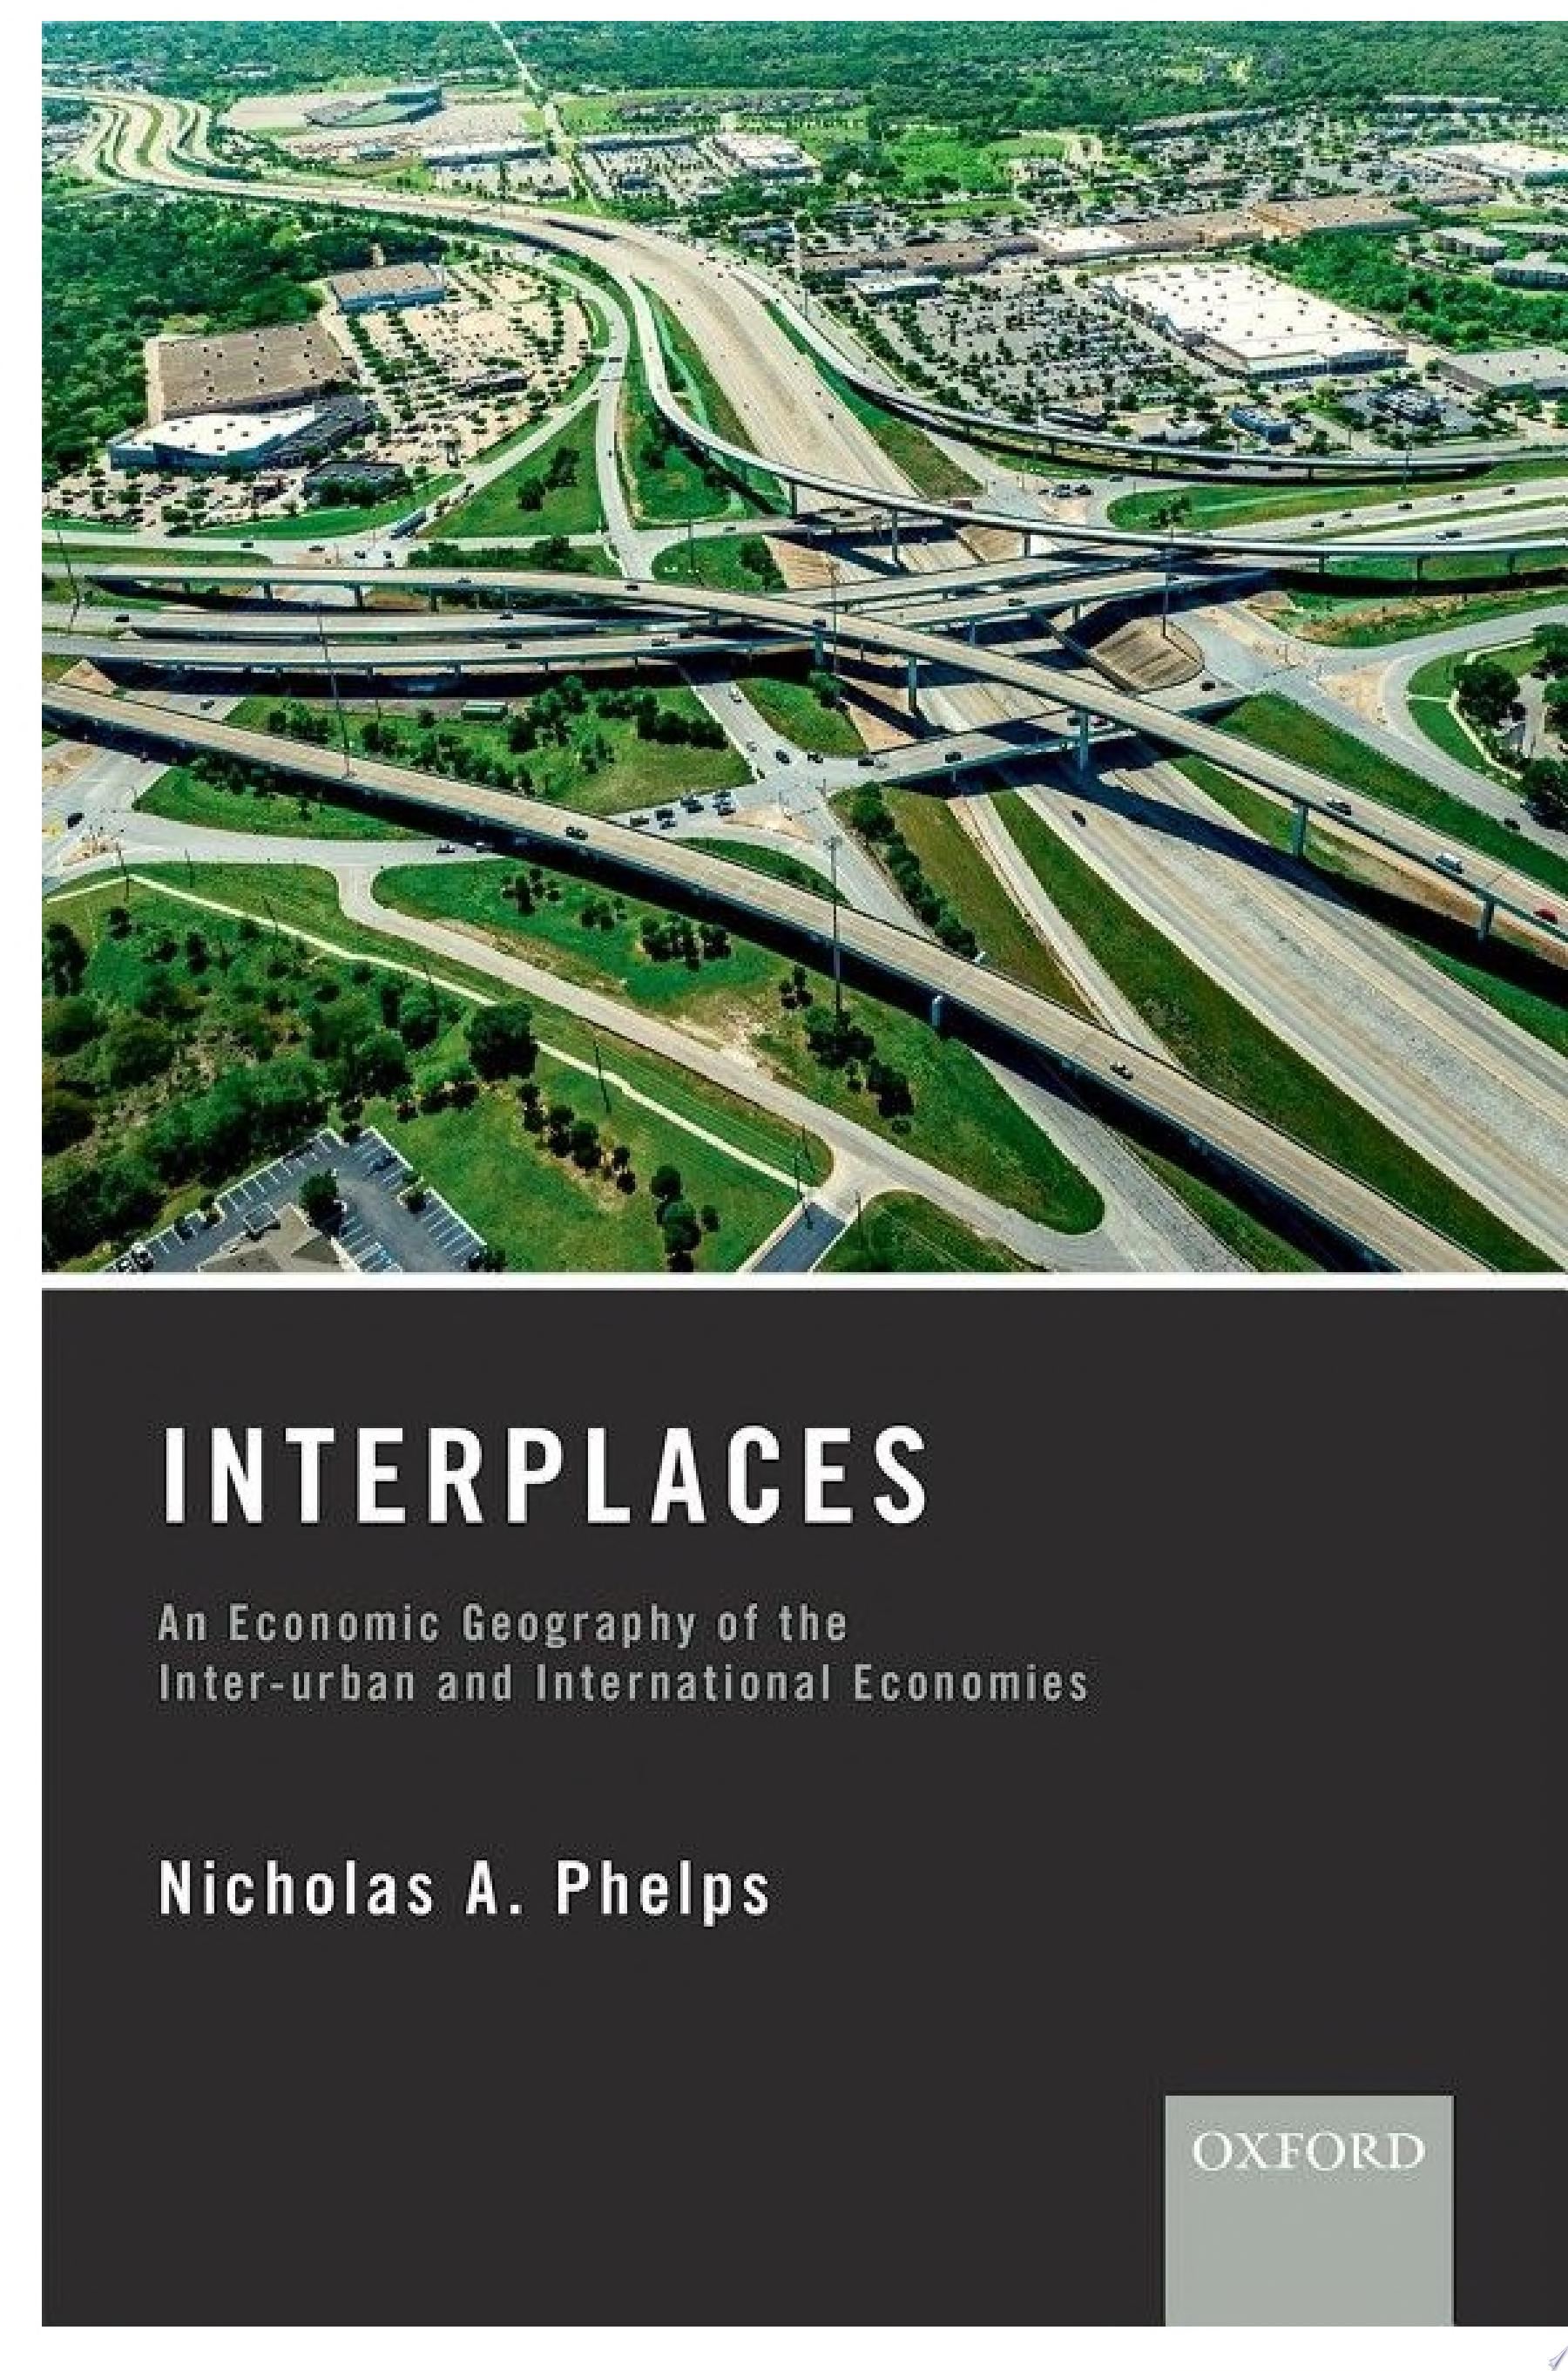 Interplaces